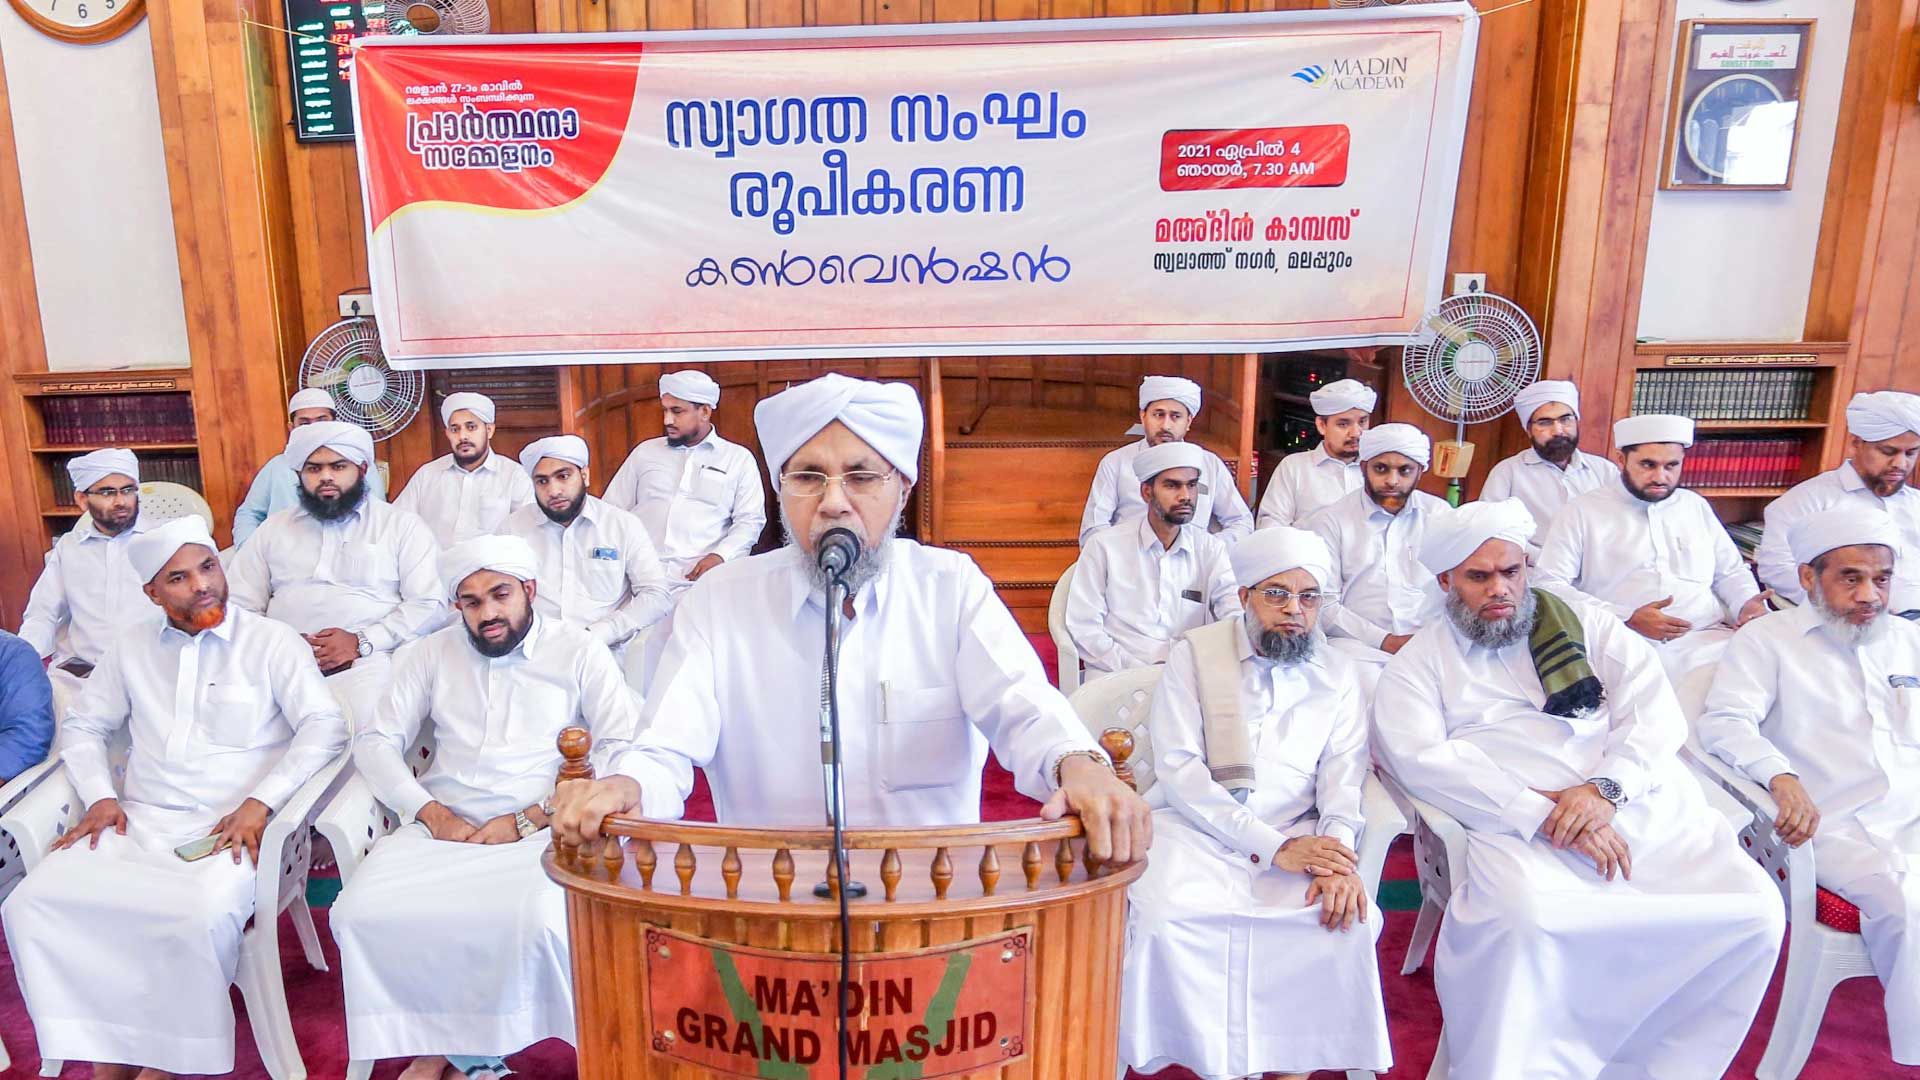 Ma'din Ramadan Prayer Conference; 5555 member organizing committee was formed - 2021